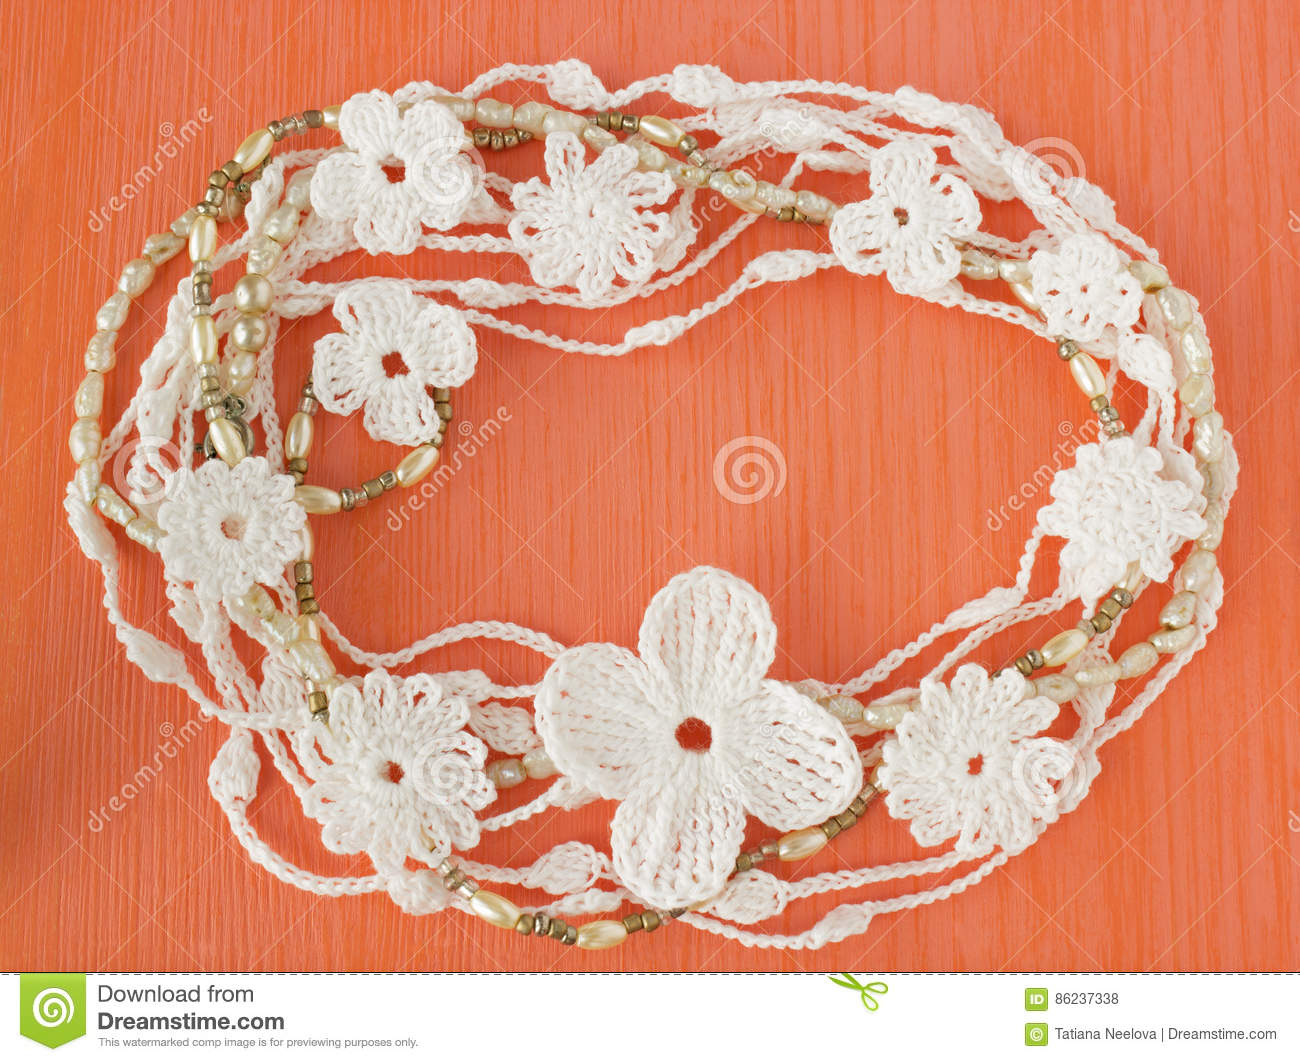 Handmade Crocheted Cotton Organic Lace Wreath. White Knitted Frame ...